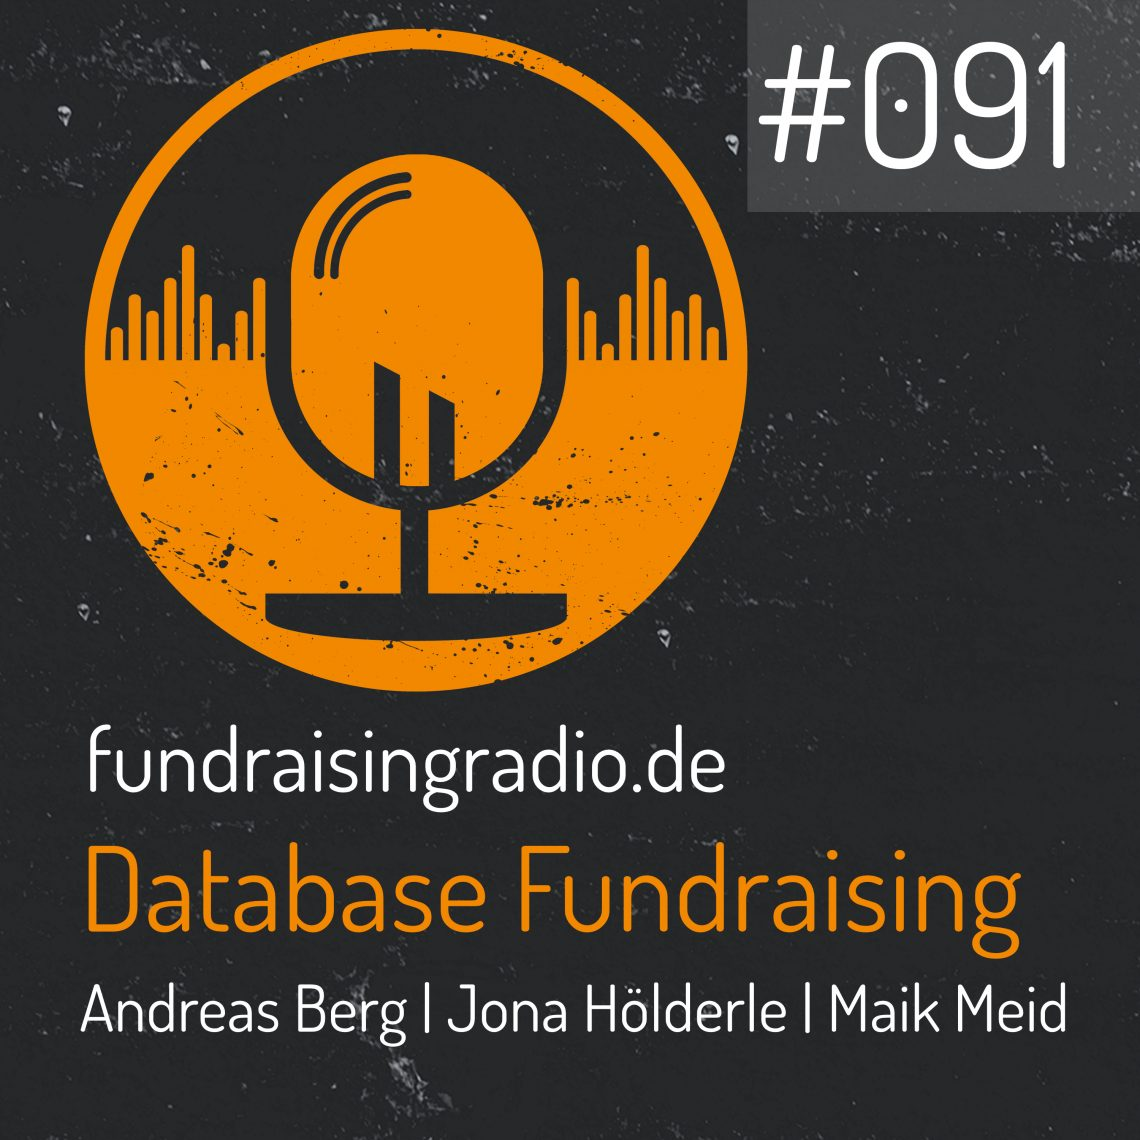 FRR091: Database Fundraising